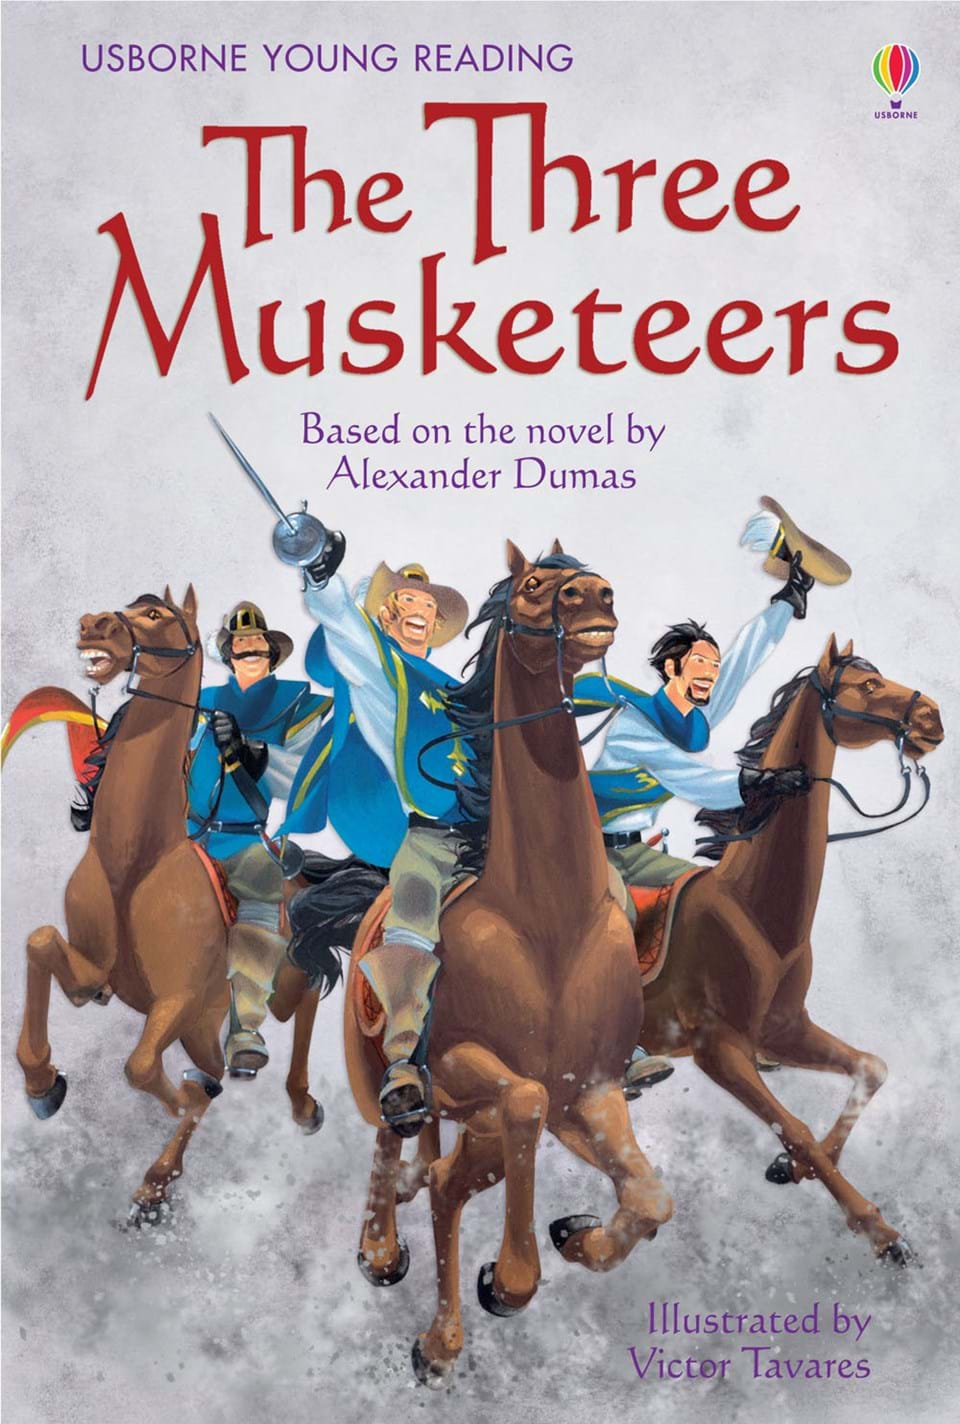 """The Three Types Of Totalitarian Systems: """"The Three Musketeers"""" At Usborne Children's Books"""